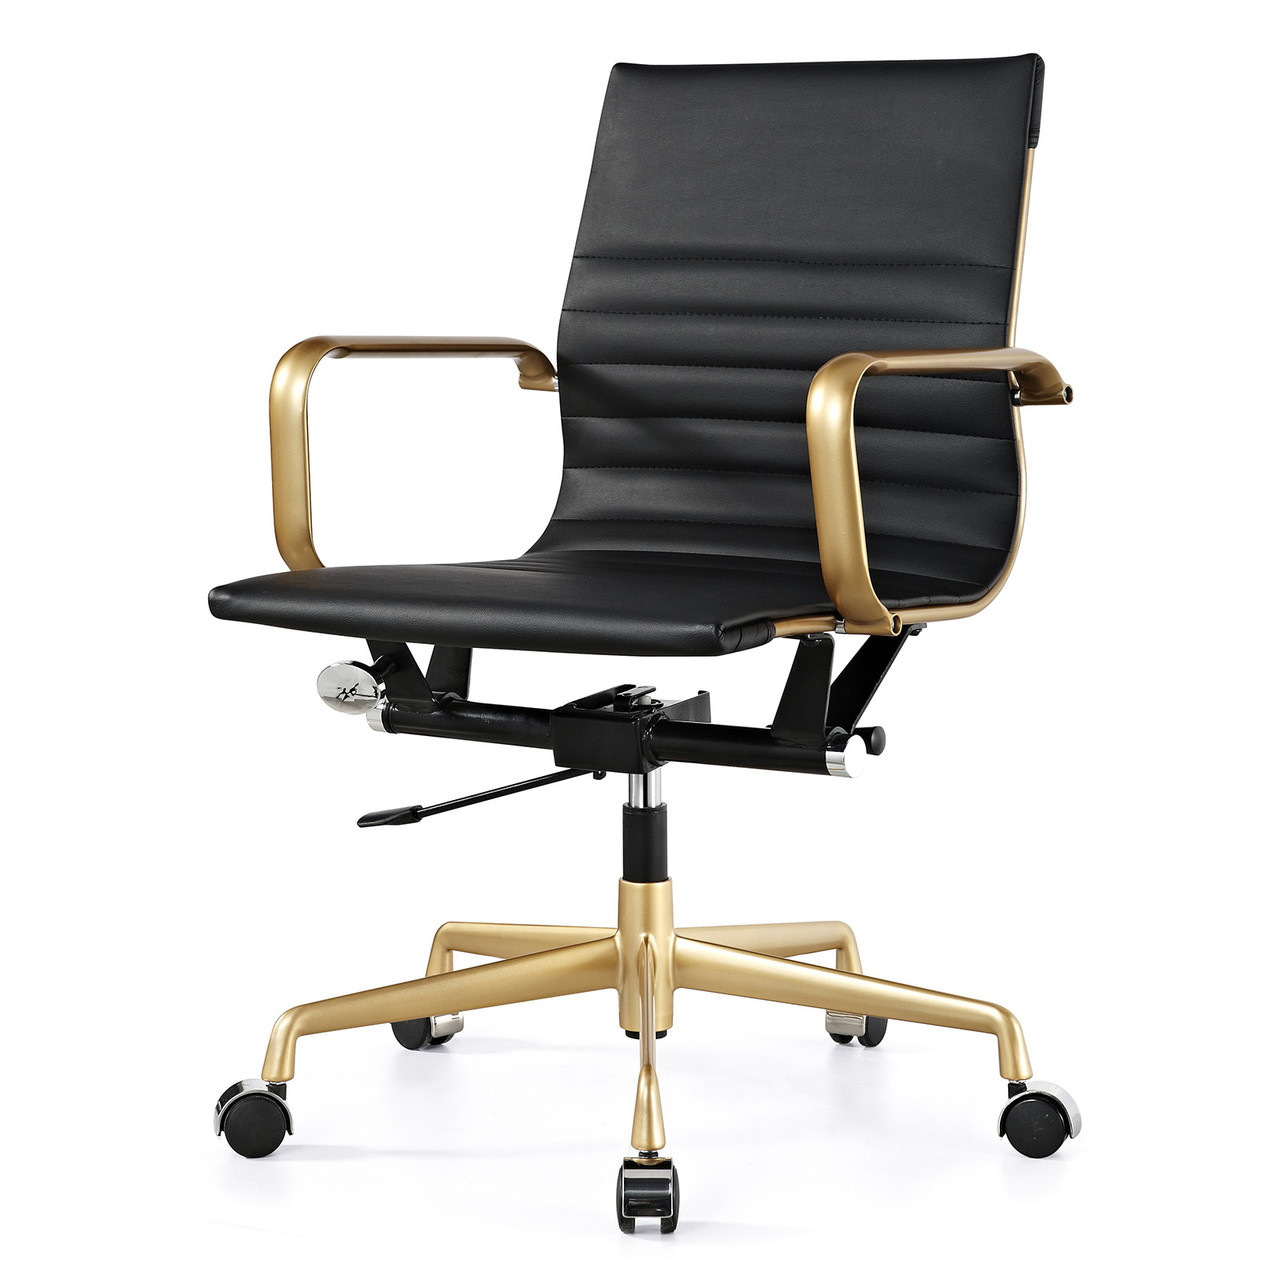 office chair gold eddie bauer high pad and black vegan leather m348 modern chairs